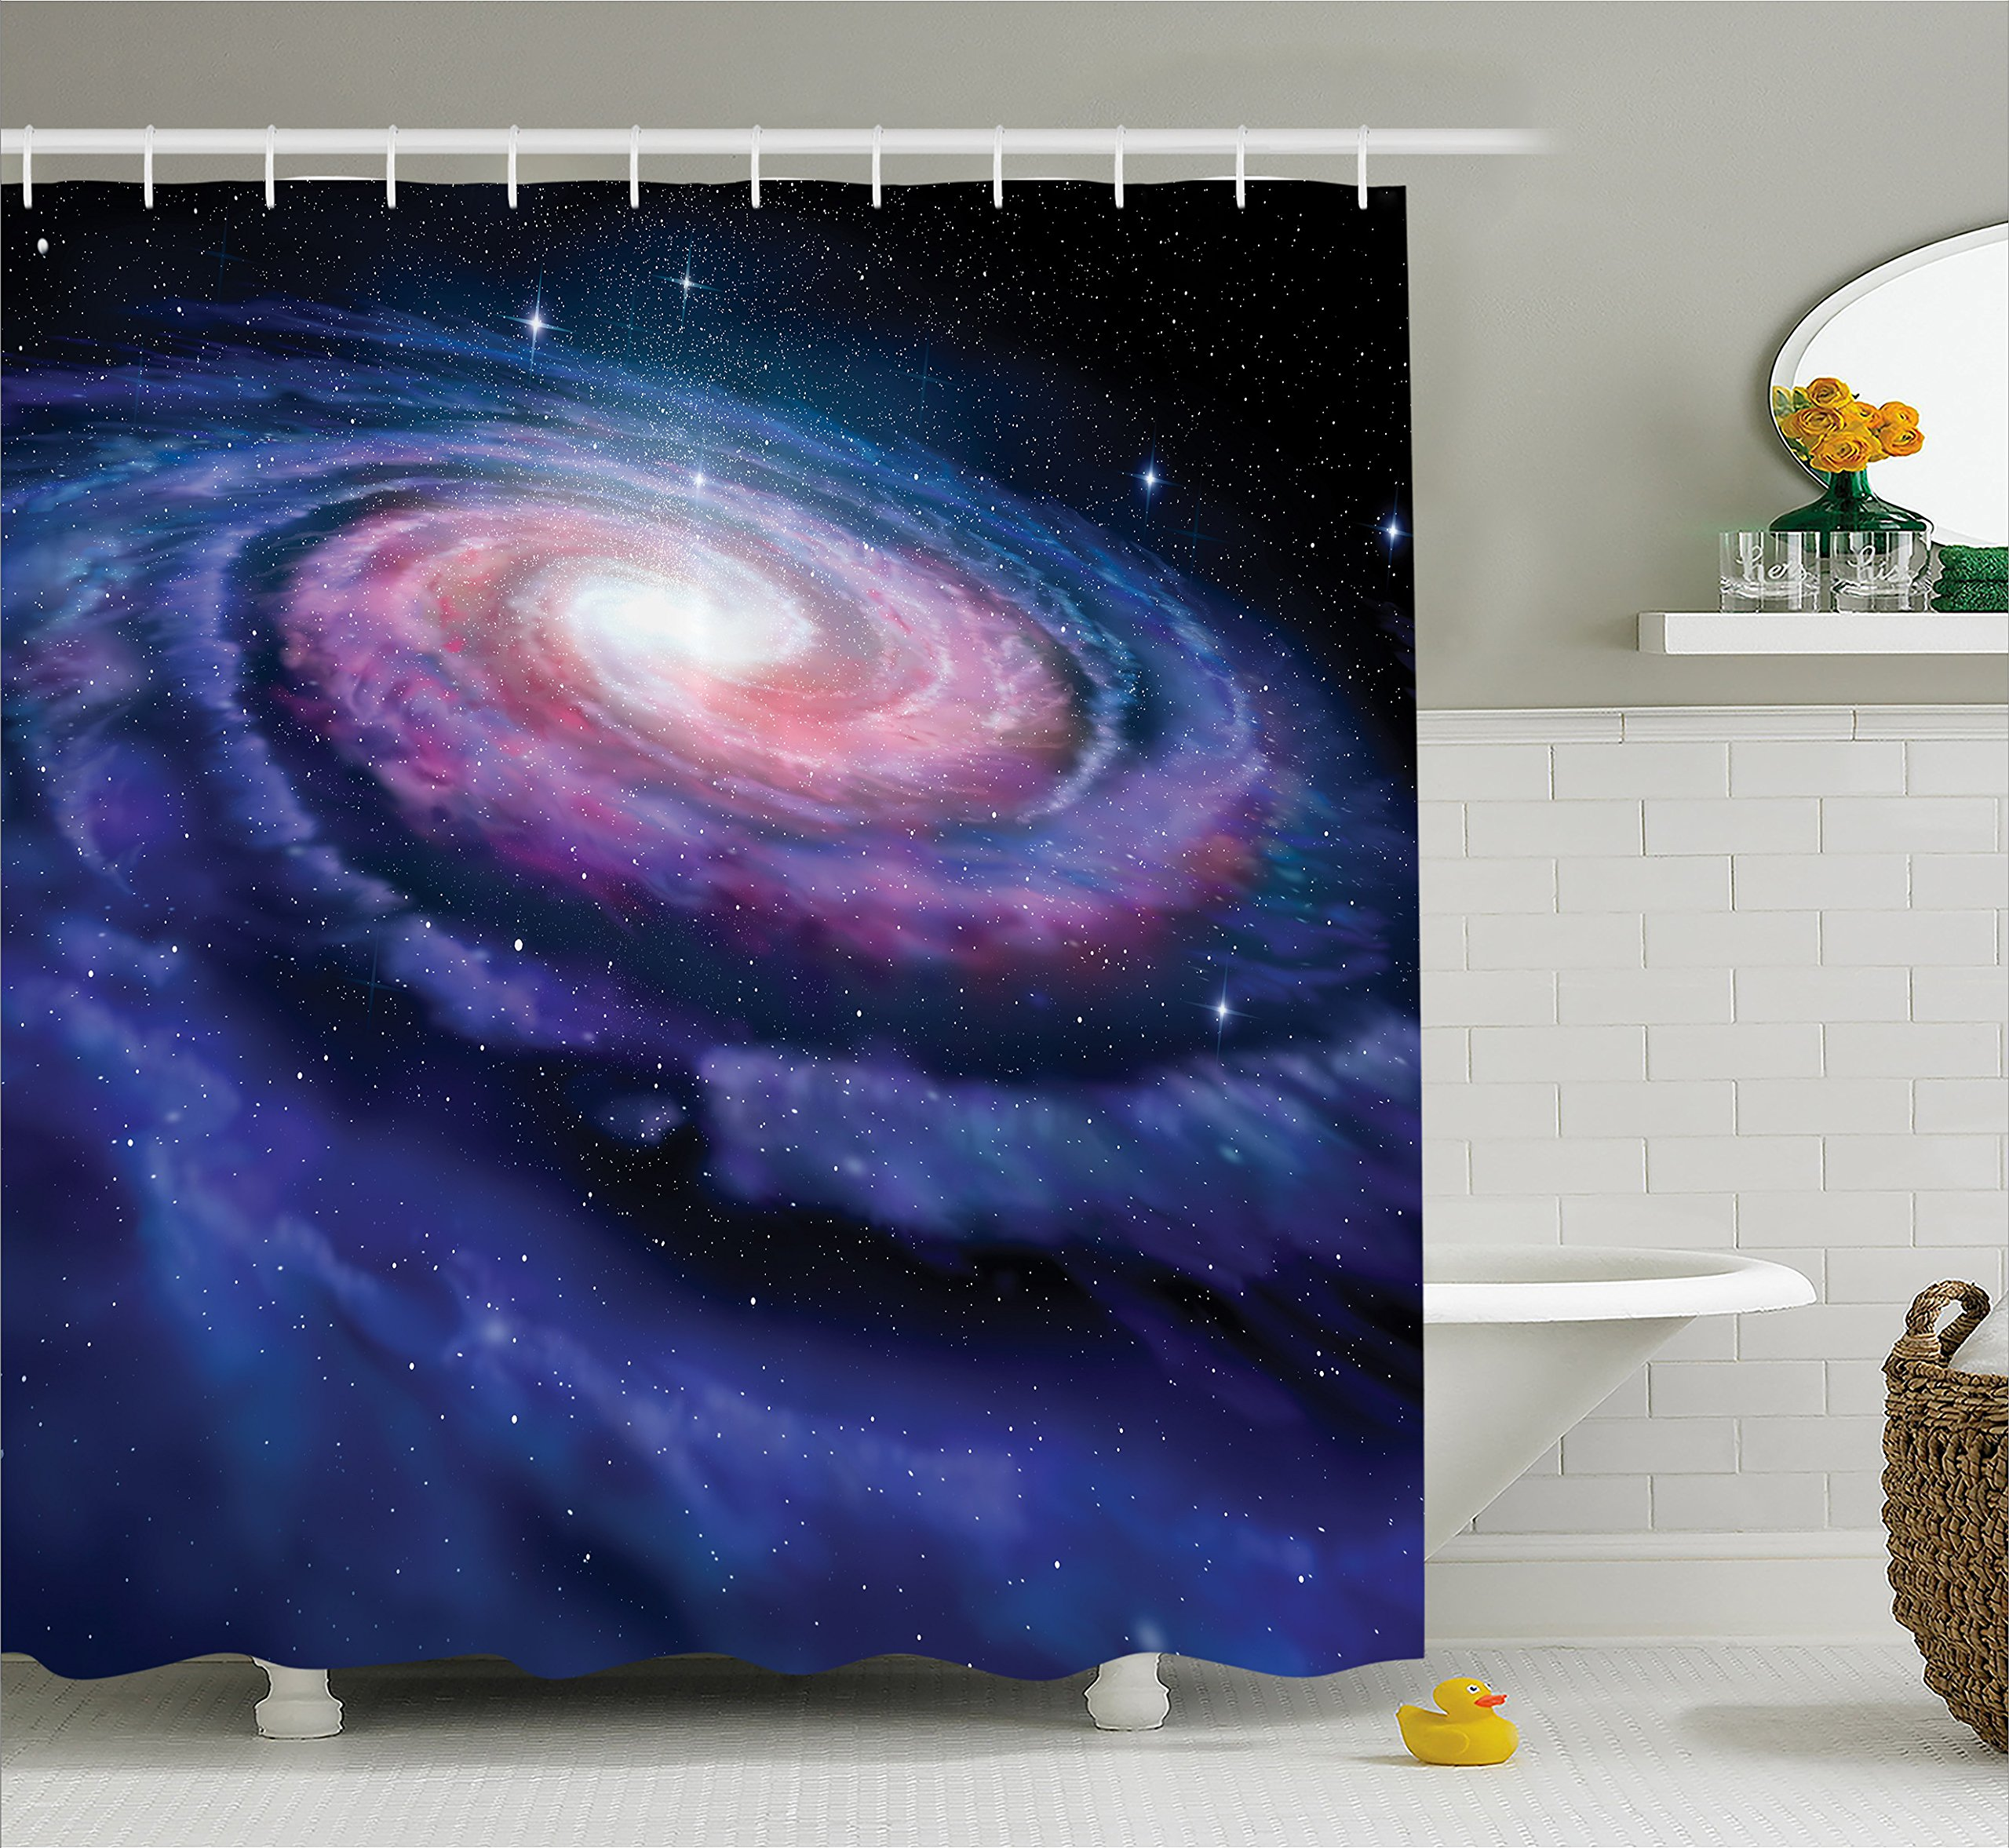 Outer Space Decor Shower Curtain by Ambesonne, Spiral Cosmic Energy with Dark Nebula Cloud Burst Solar Universe Image, Fabric Bathroom Decor Set with Hooks, 70 Inches, Blue Purple